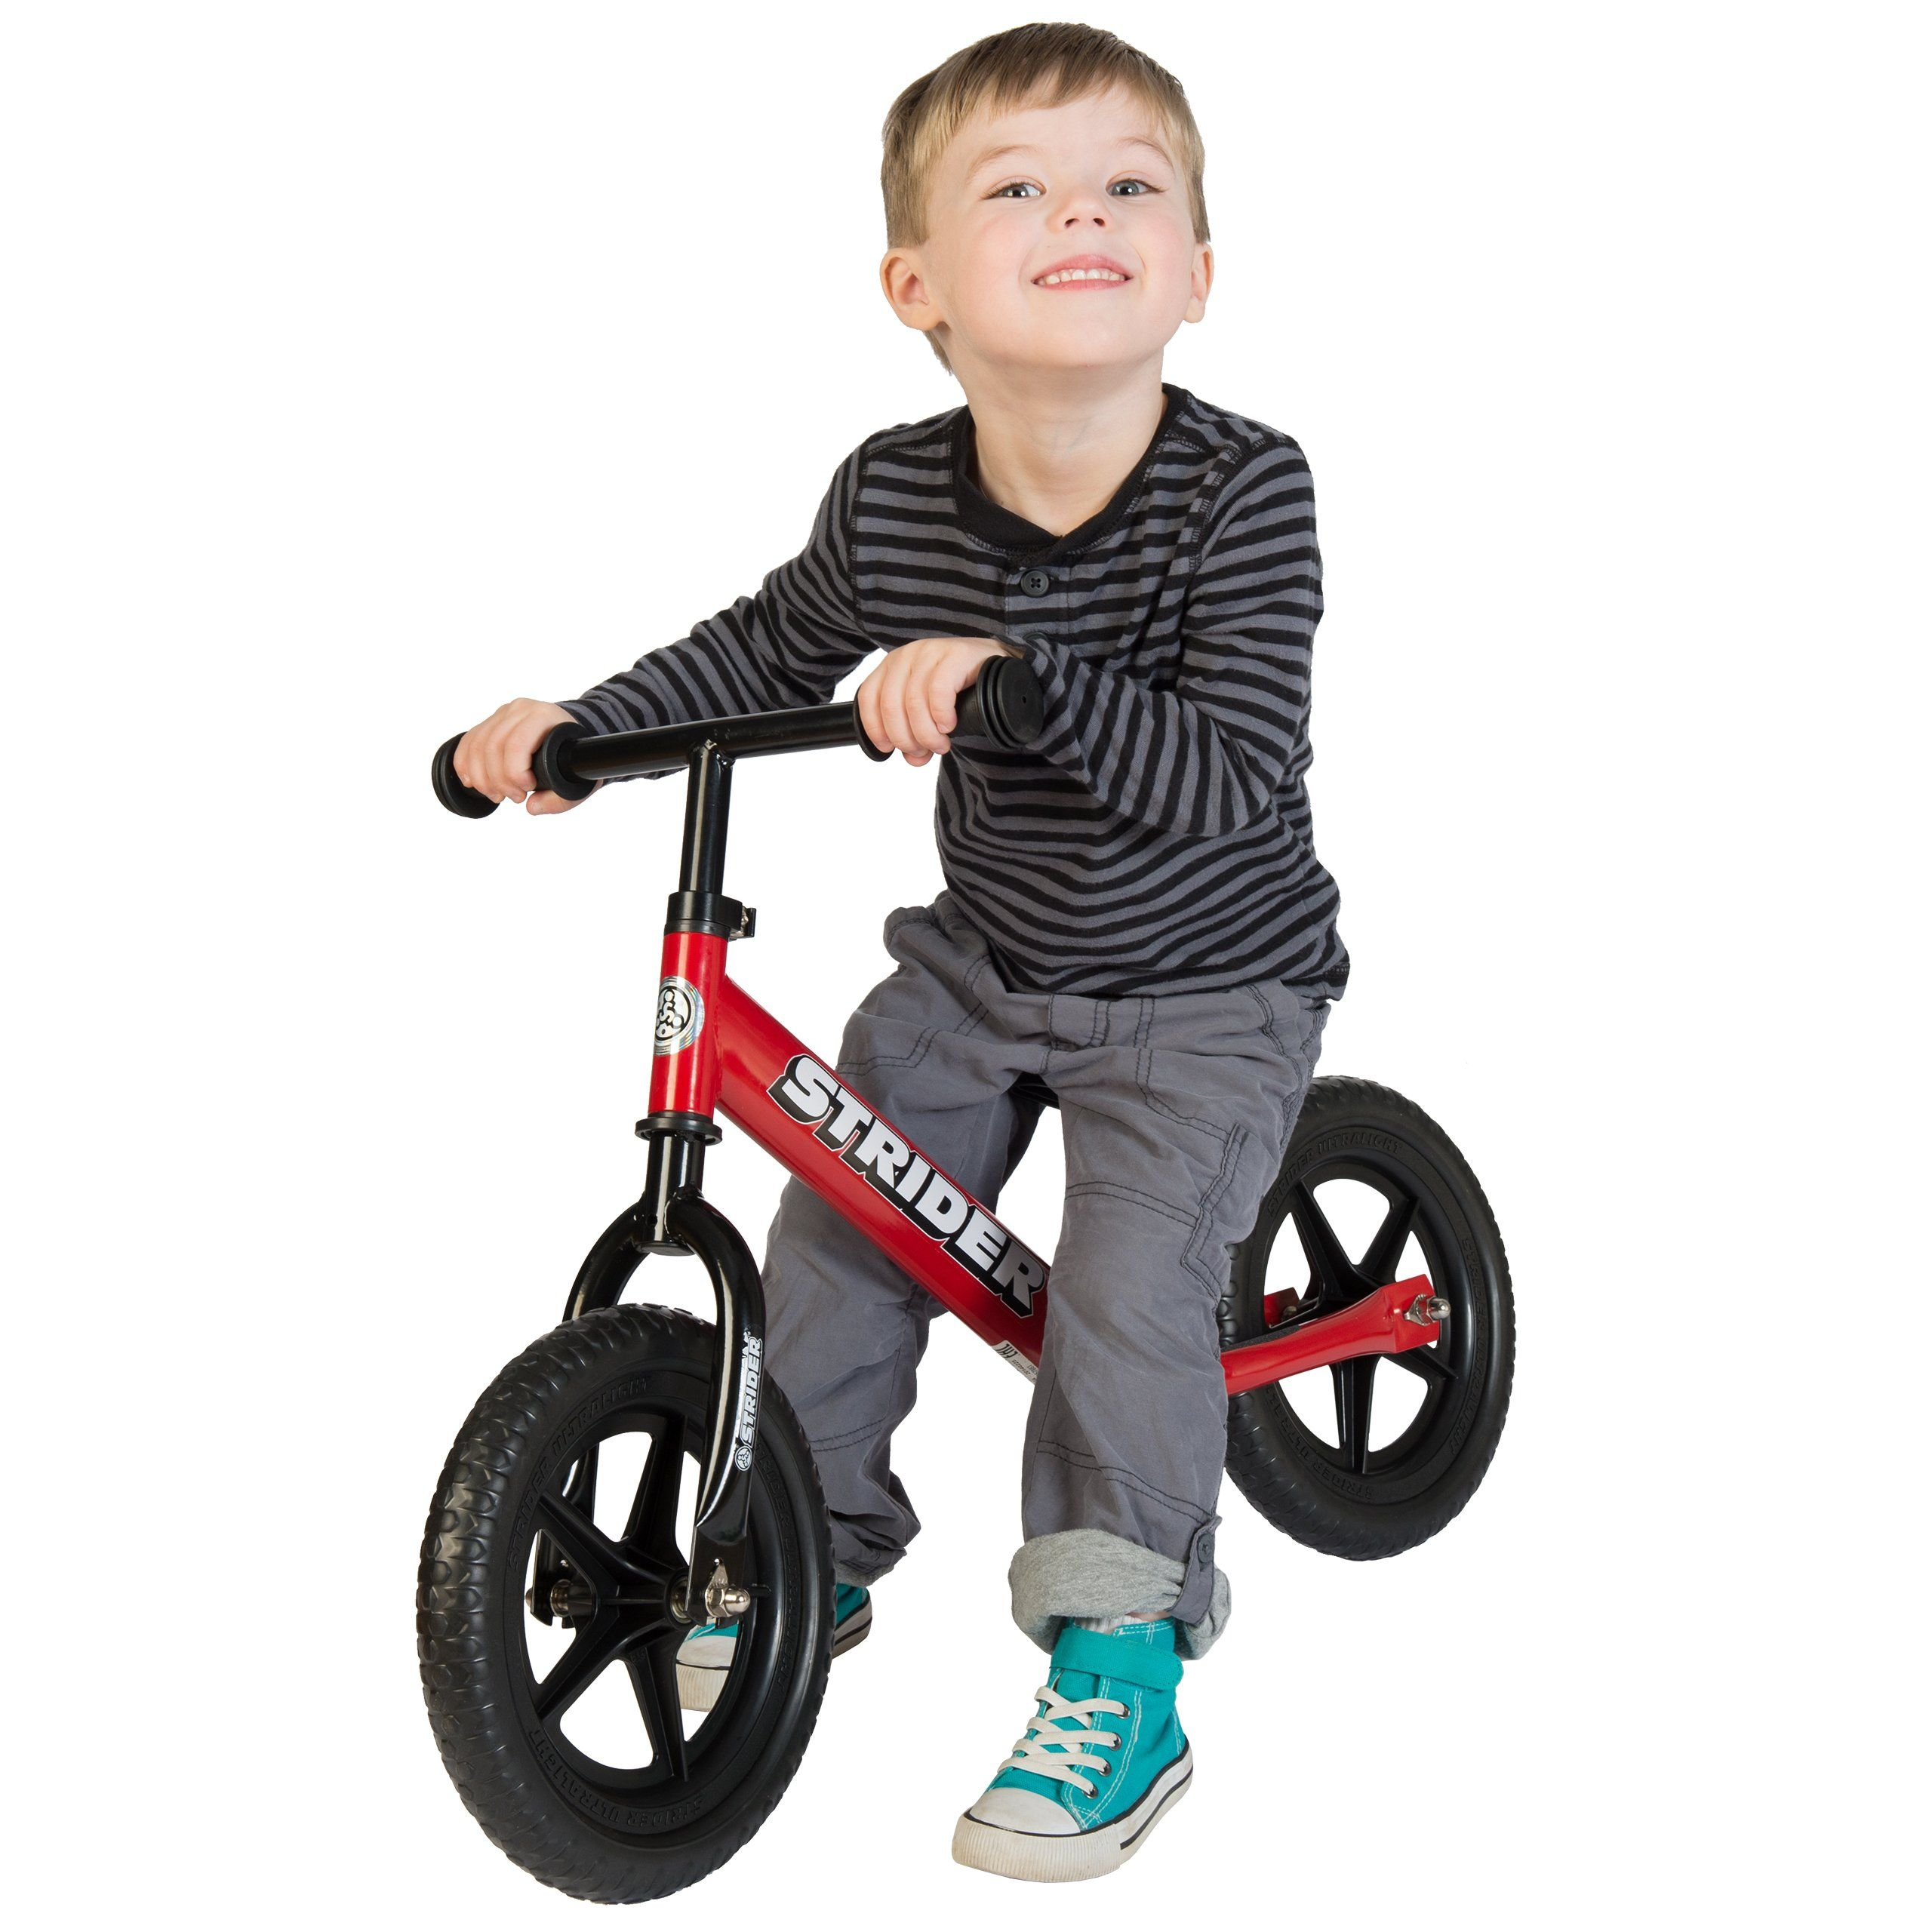 Strider 12 Sport No Pedal Balance Bike Review Balance Bike